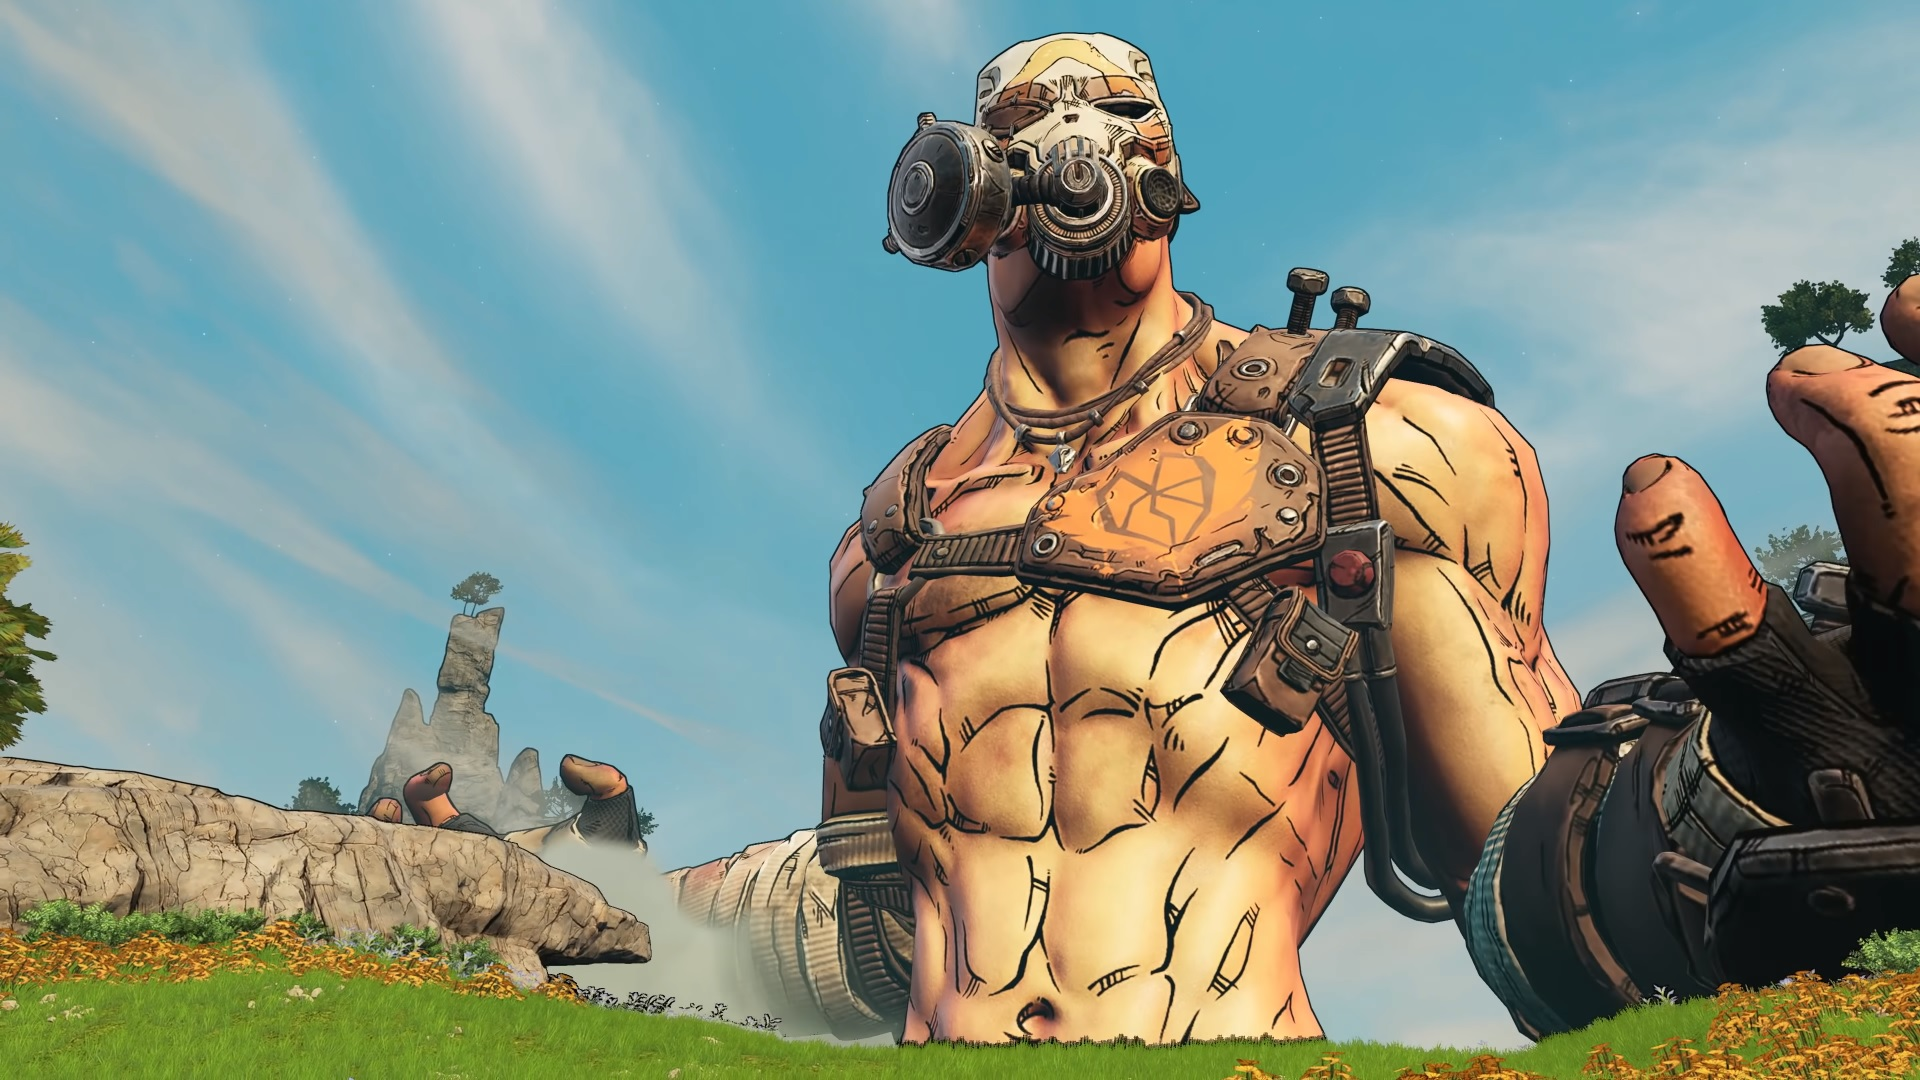 Krieg's terrifying abs have been cast in the Borderlands movie